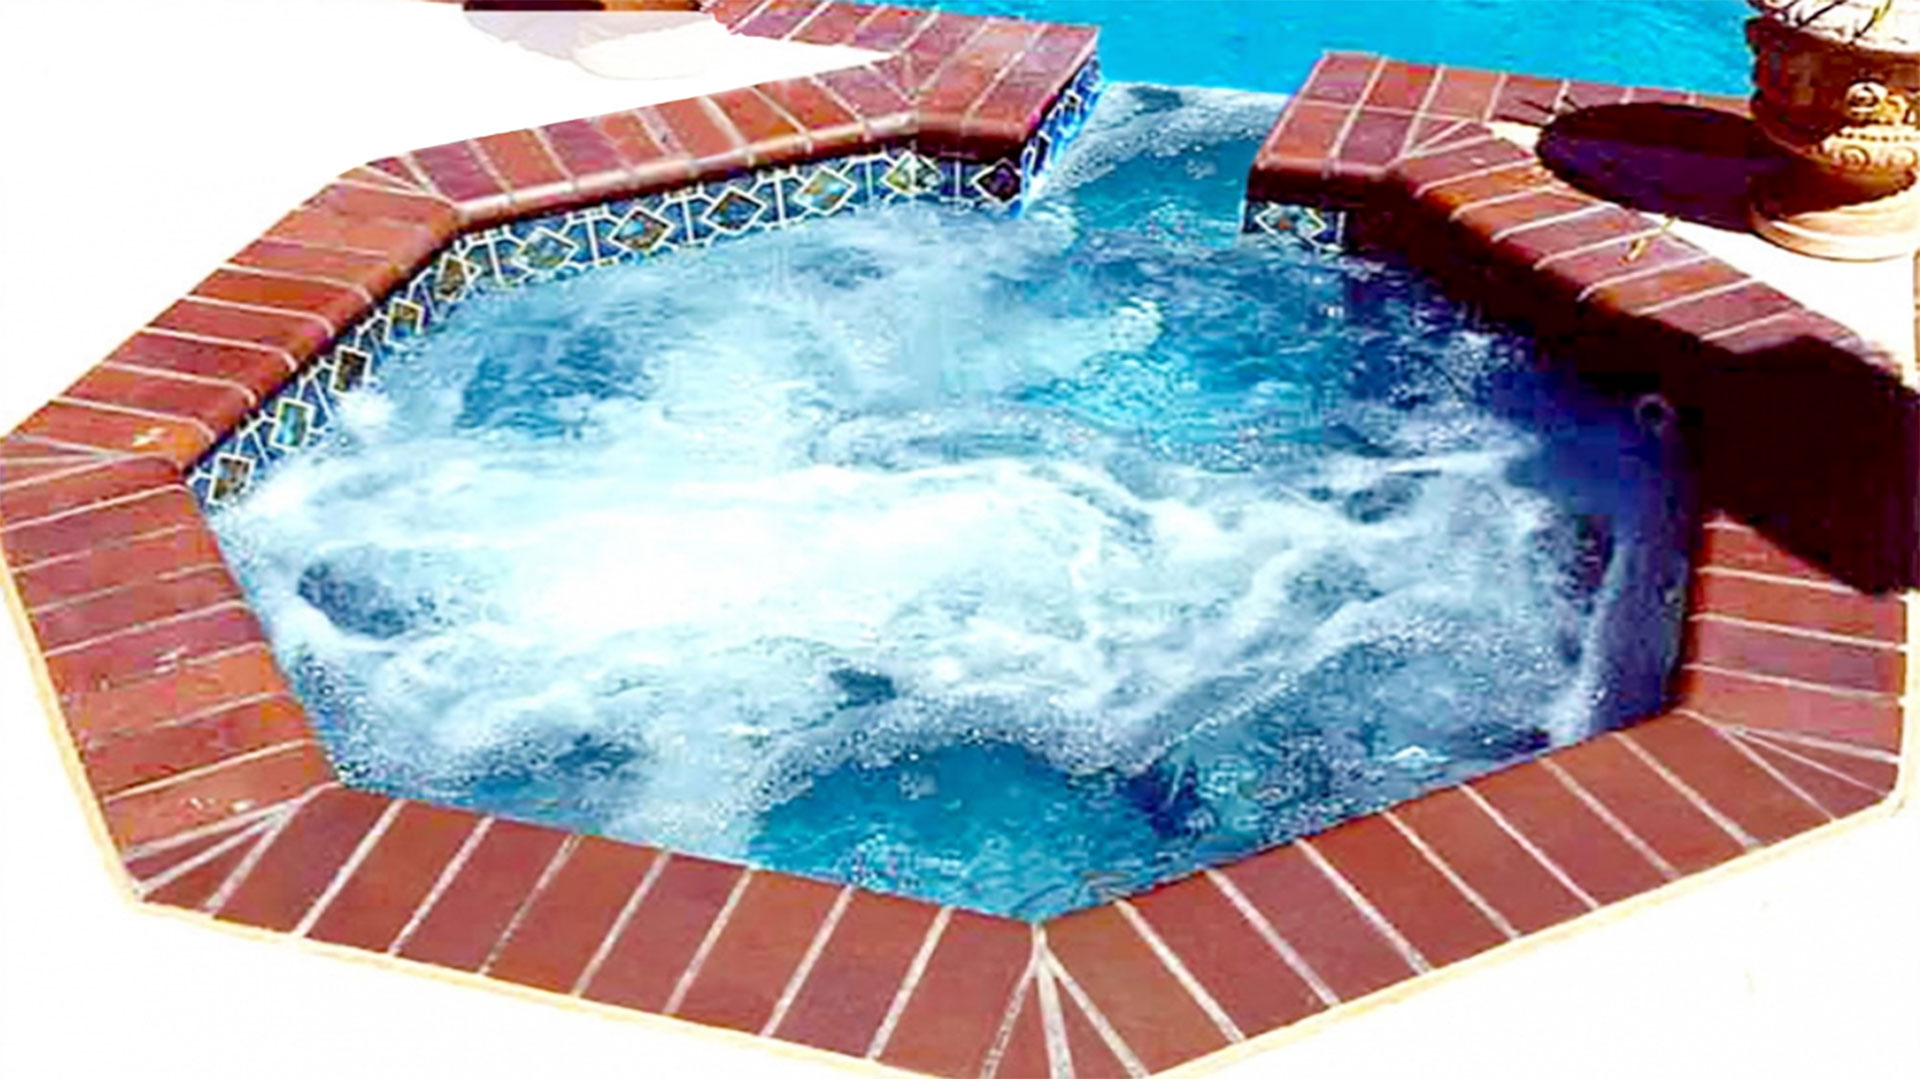 Alaglas Pools fiberglas Cayman Spa with Spillover in Quartz.